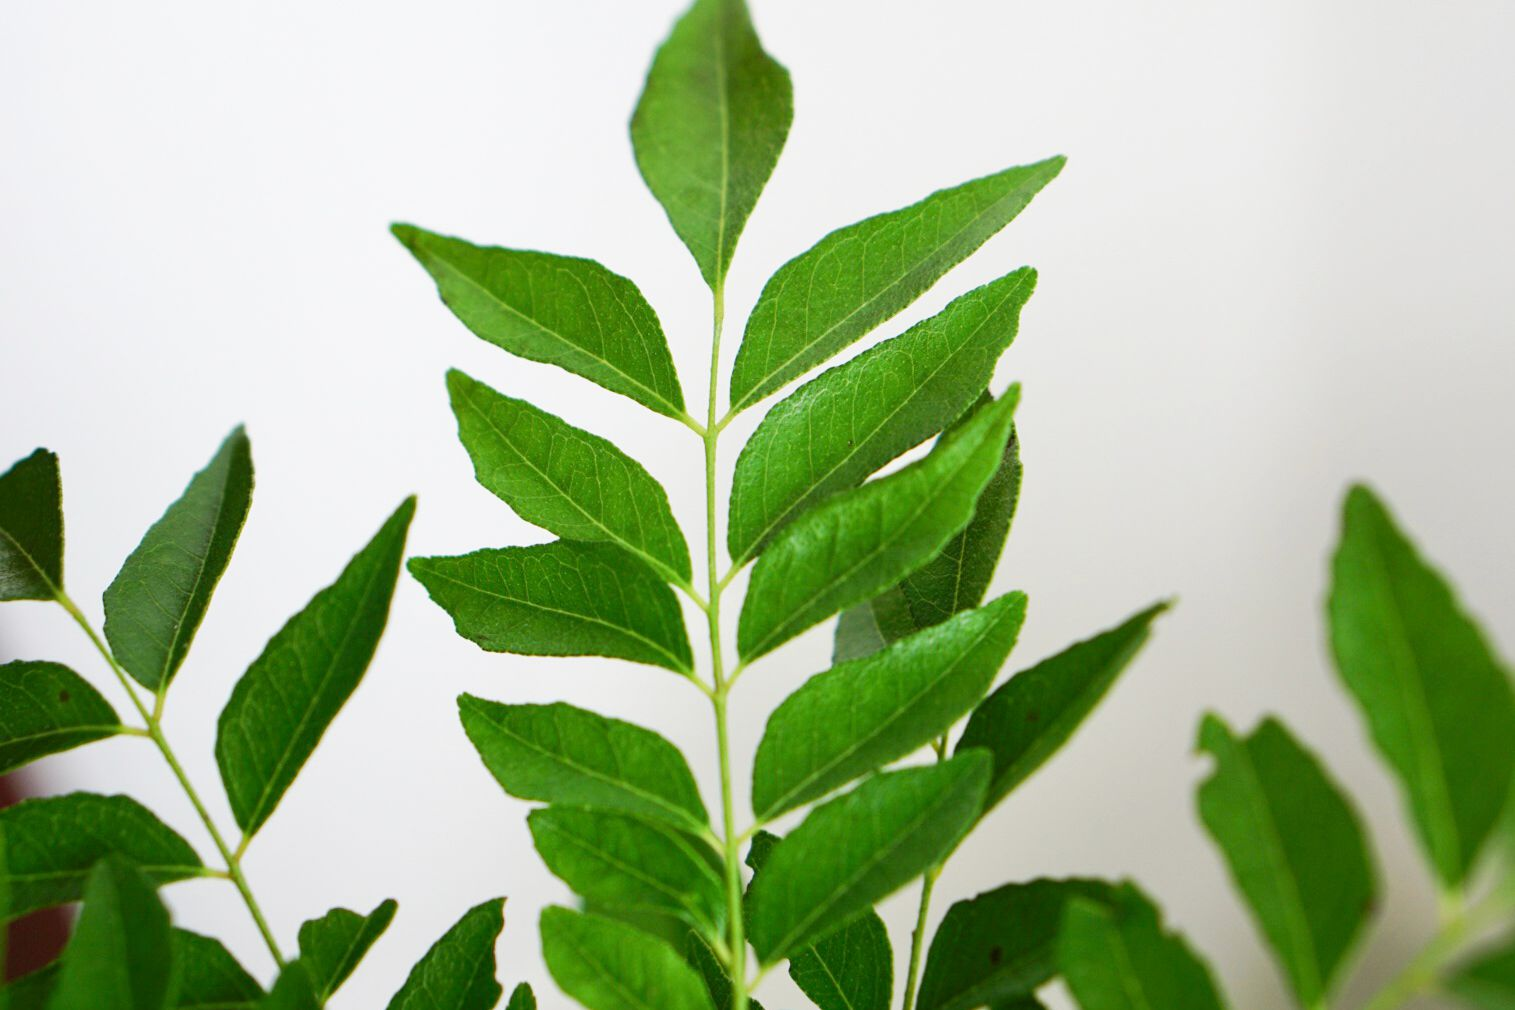 Curry tree plant branch with pinnate leaflets